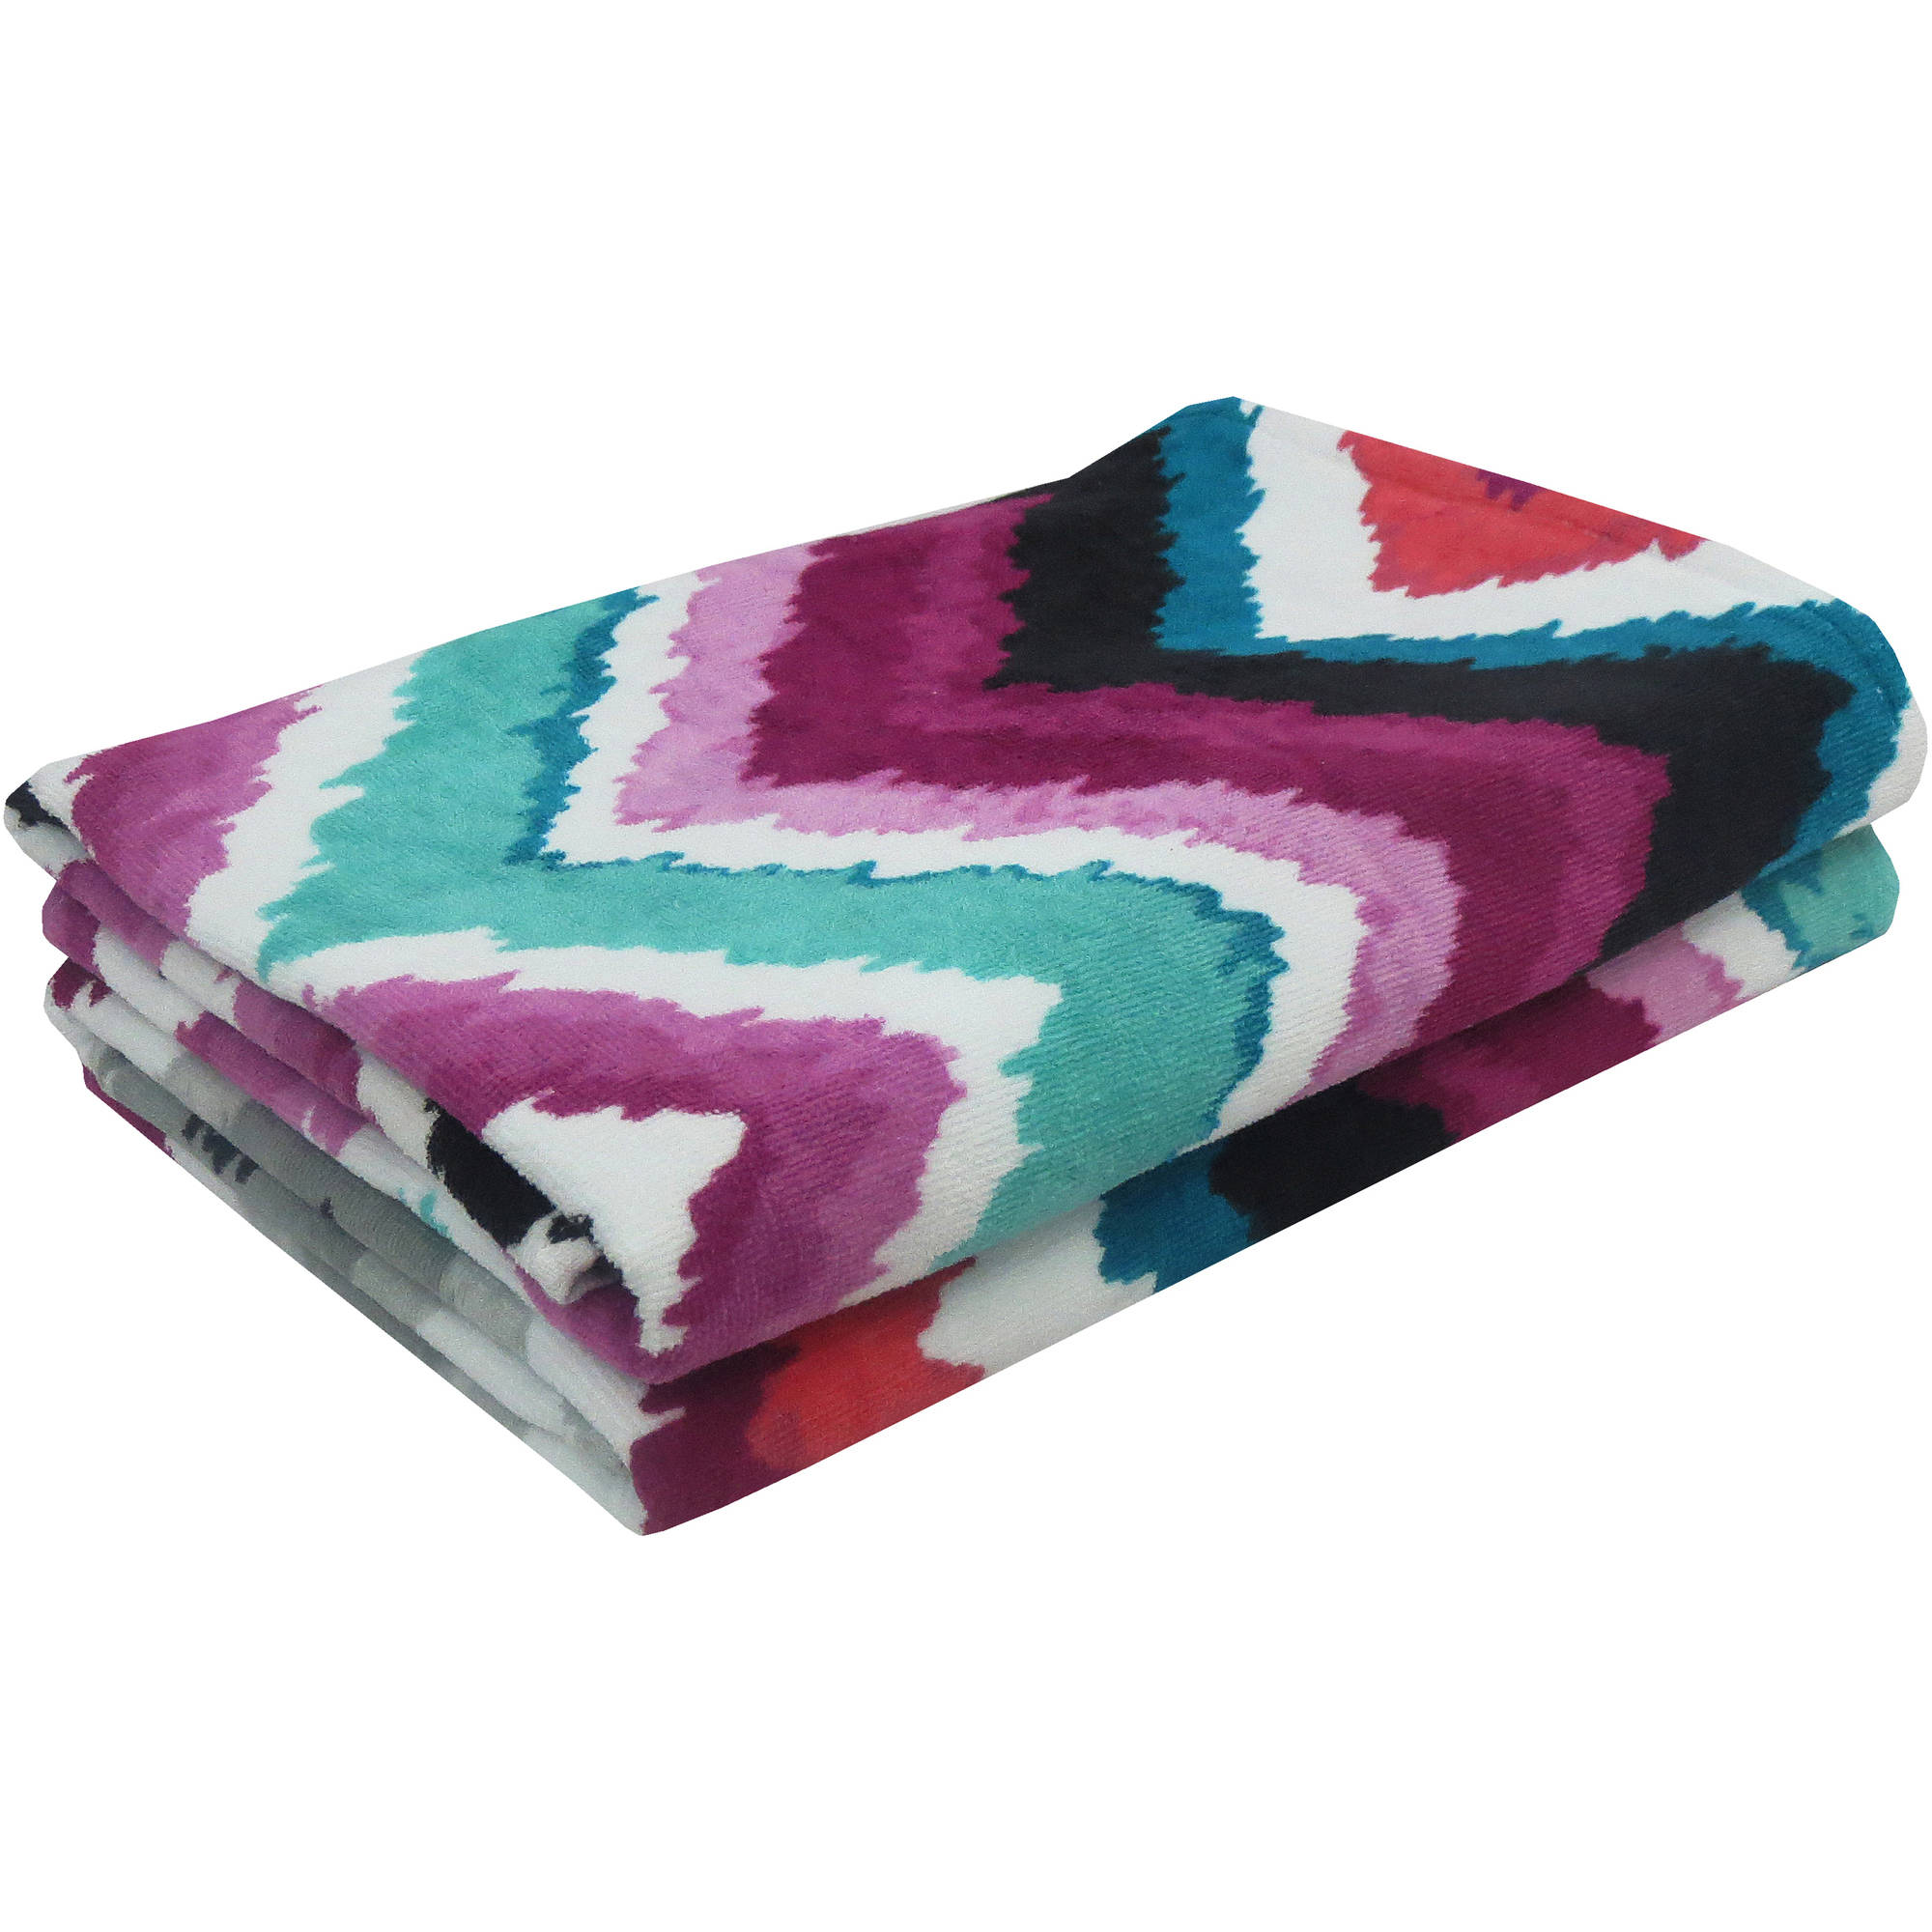 Mainstays Painted Chevron Beach Towel, Set of 2